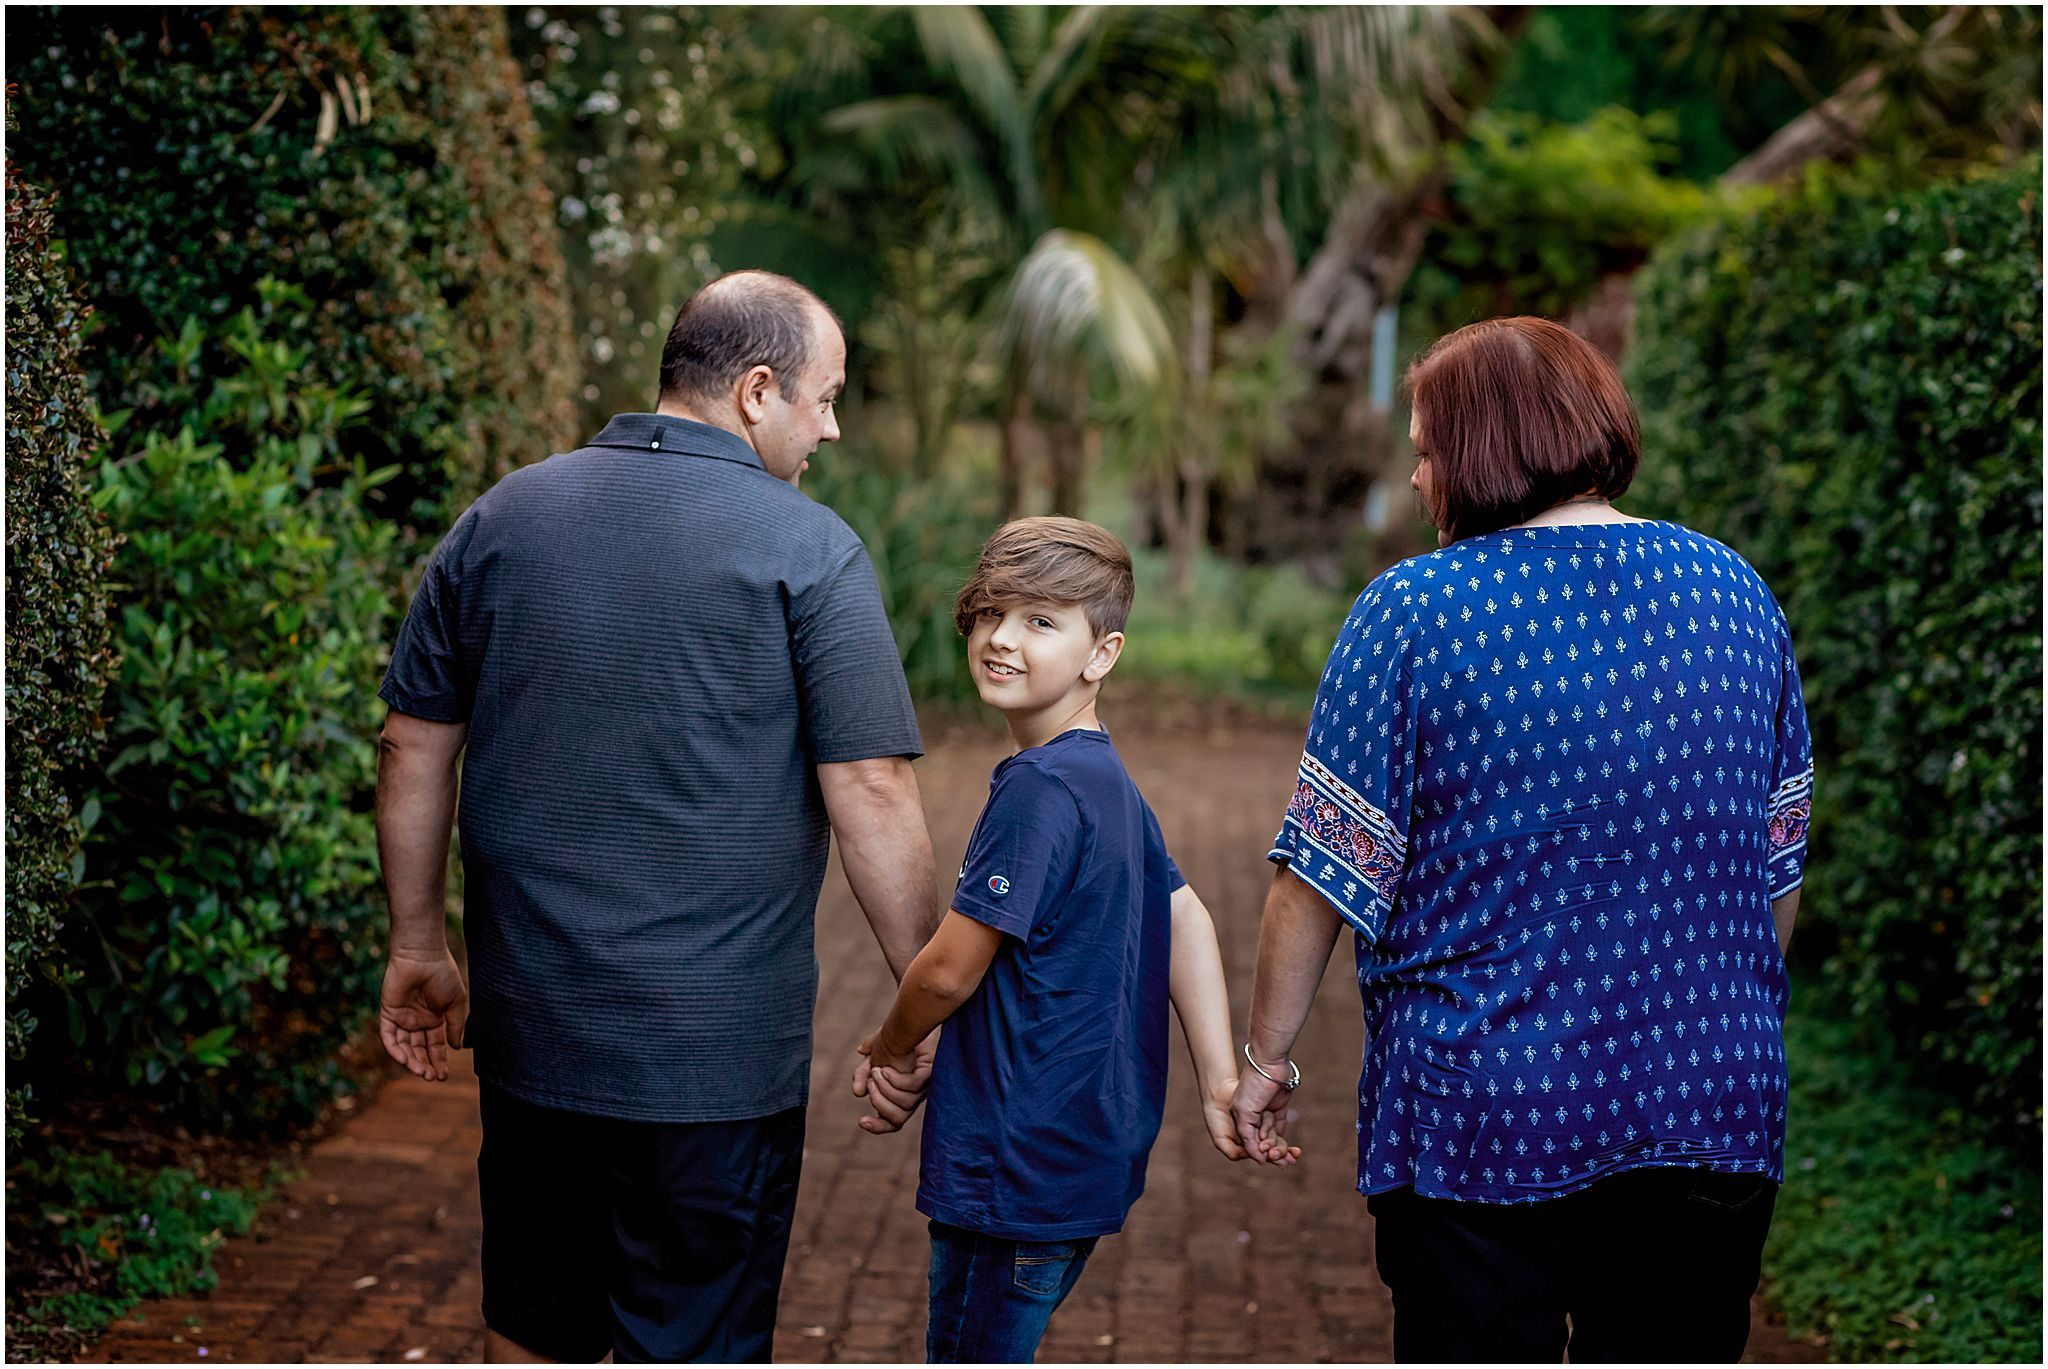 Family photography at South Perth Scented Gardens by WhiteJasmin Photography